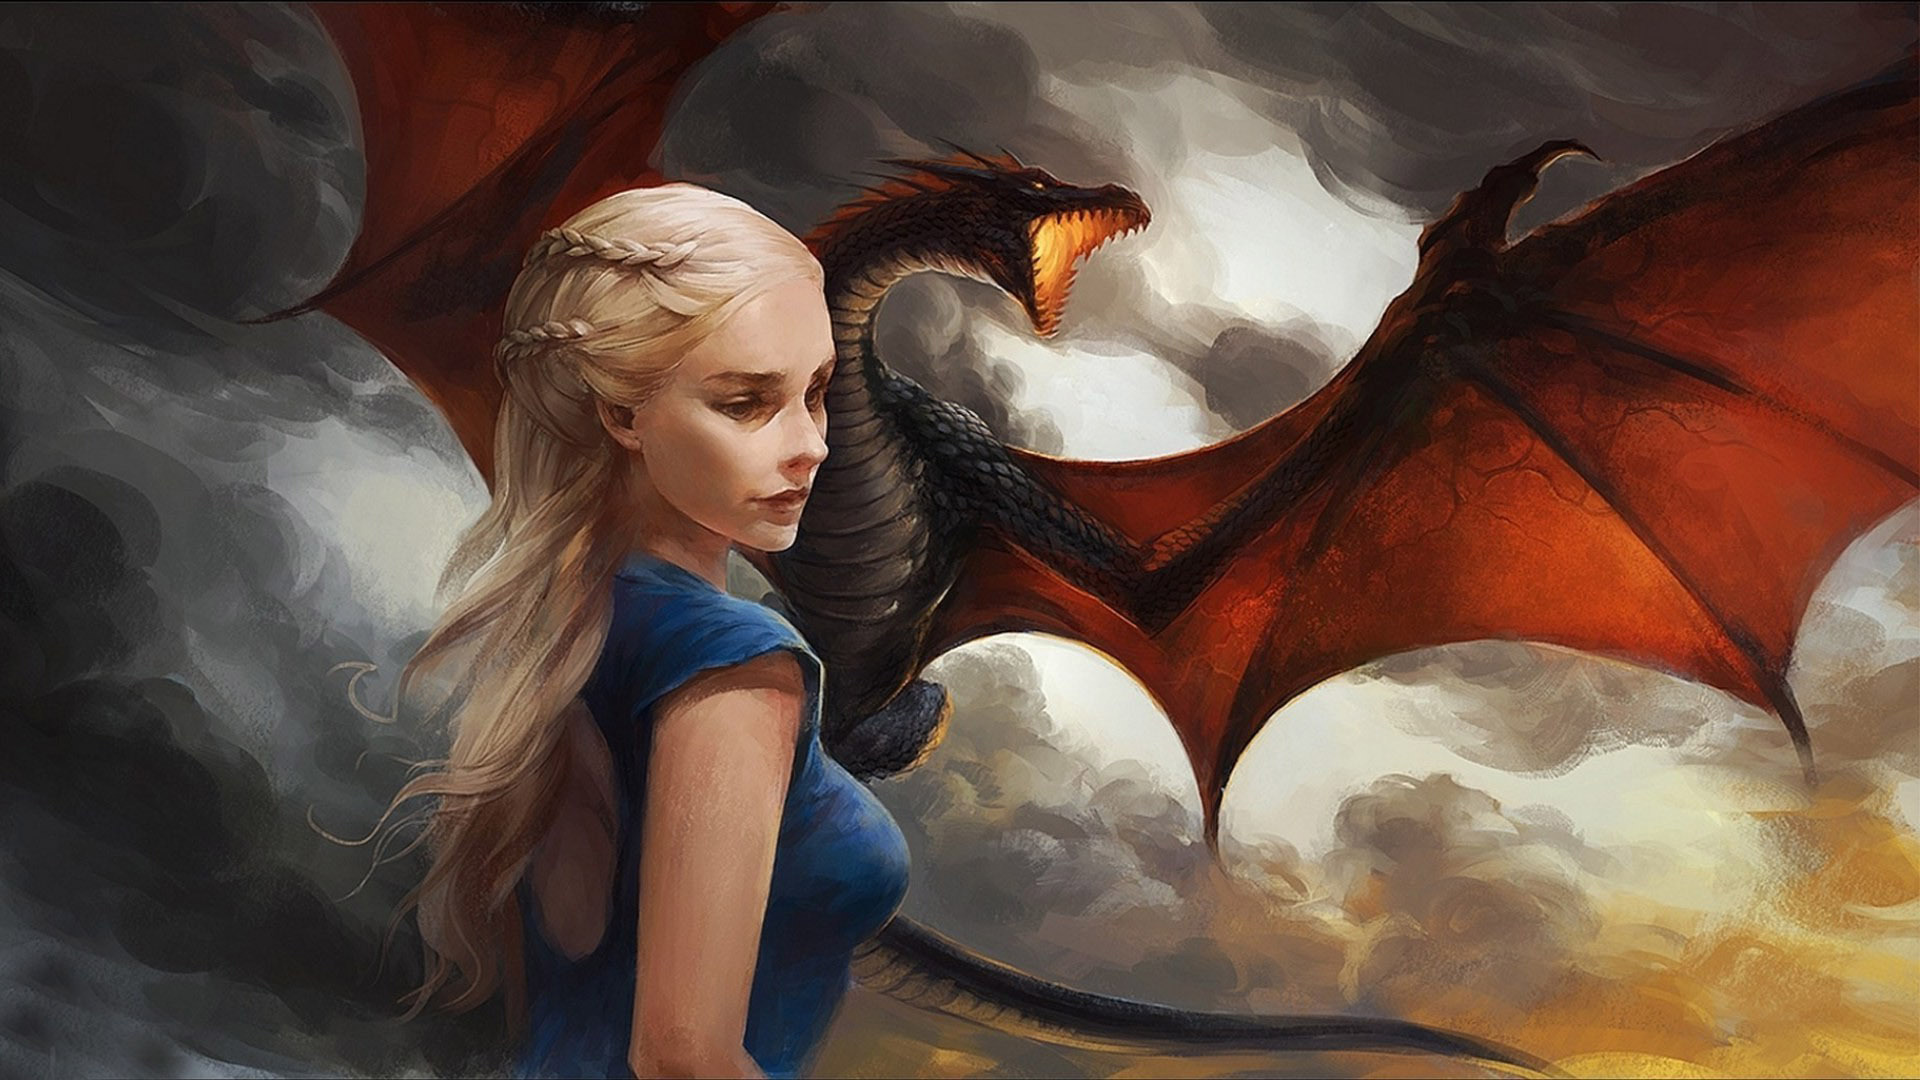 Daenerys Targaryen Hd Wallpaper on game of thrones wallpaper